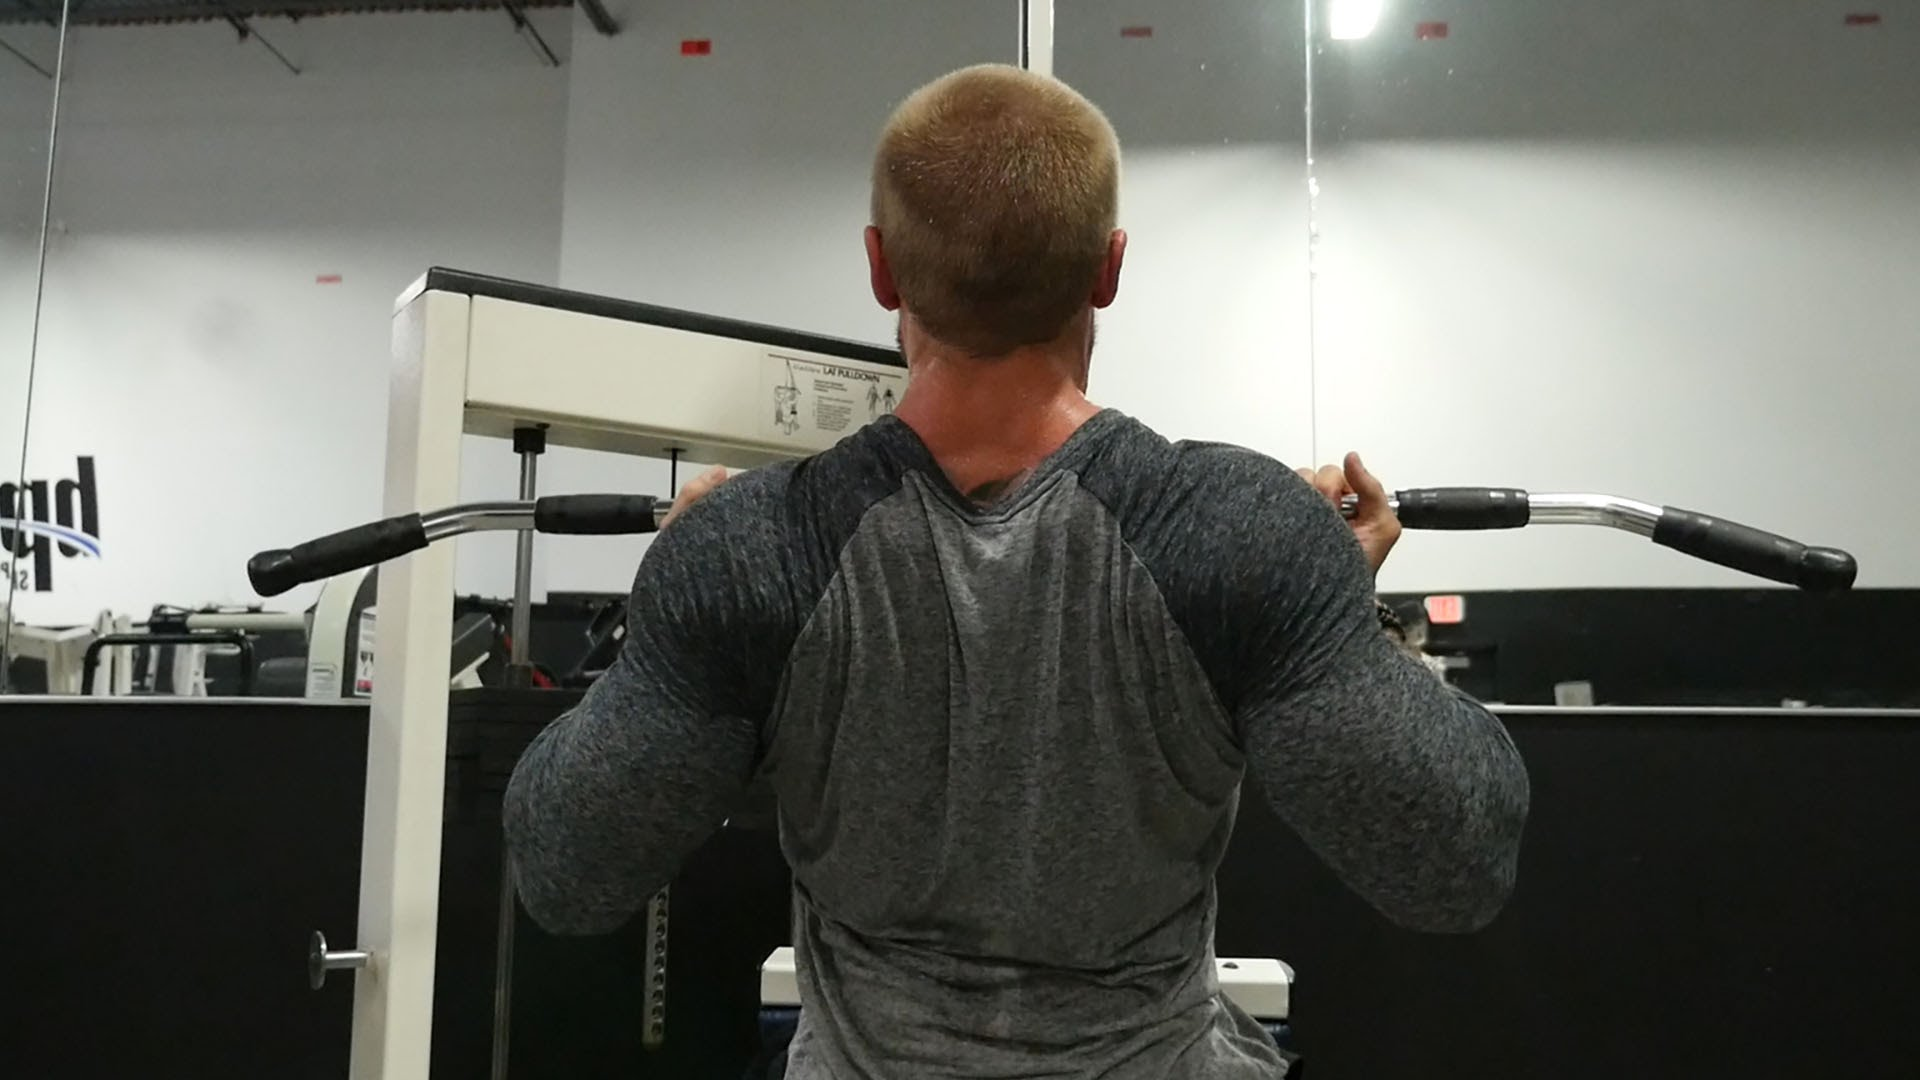 How to Get a Wide Back – Best Exercises to Build Your Lats